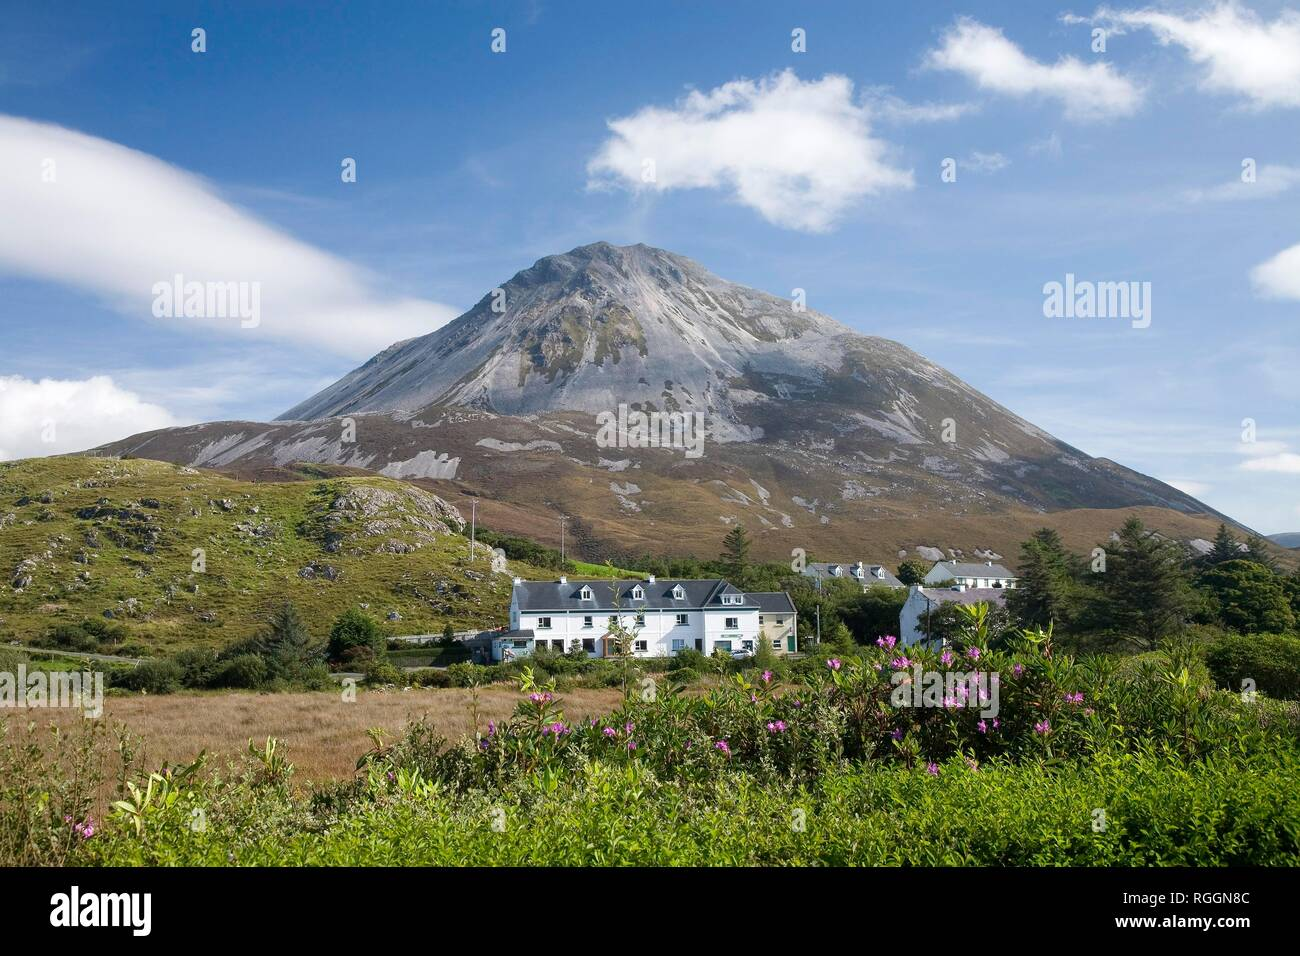 Dunlewey in front of Mount Errigal, County Donega, Ireland - Stock Image